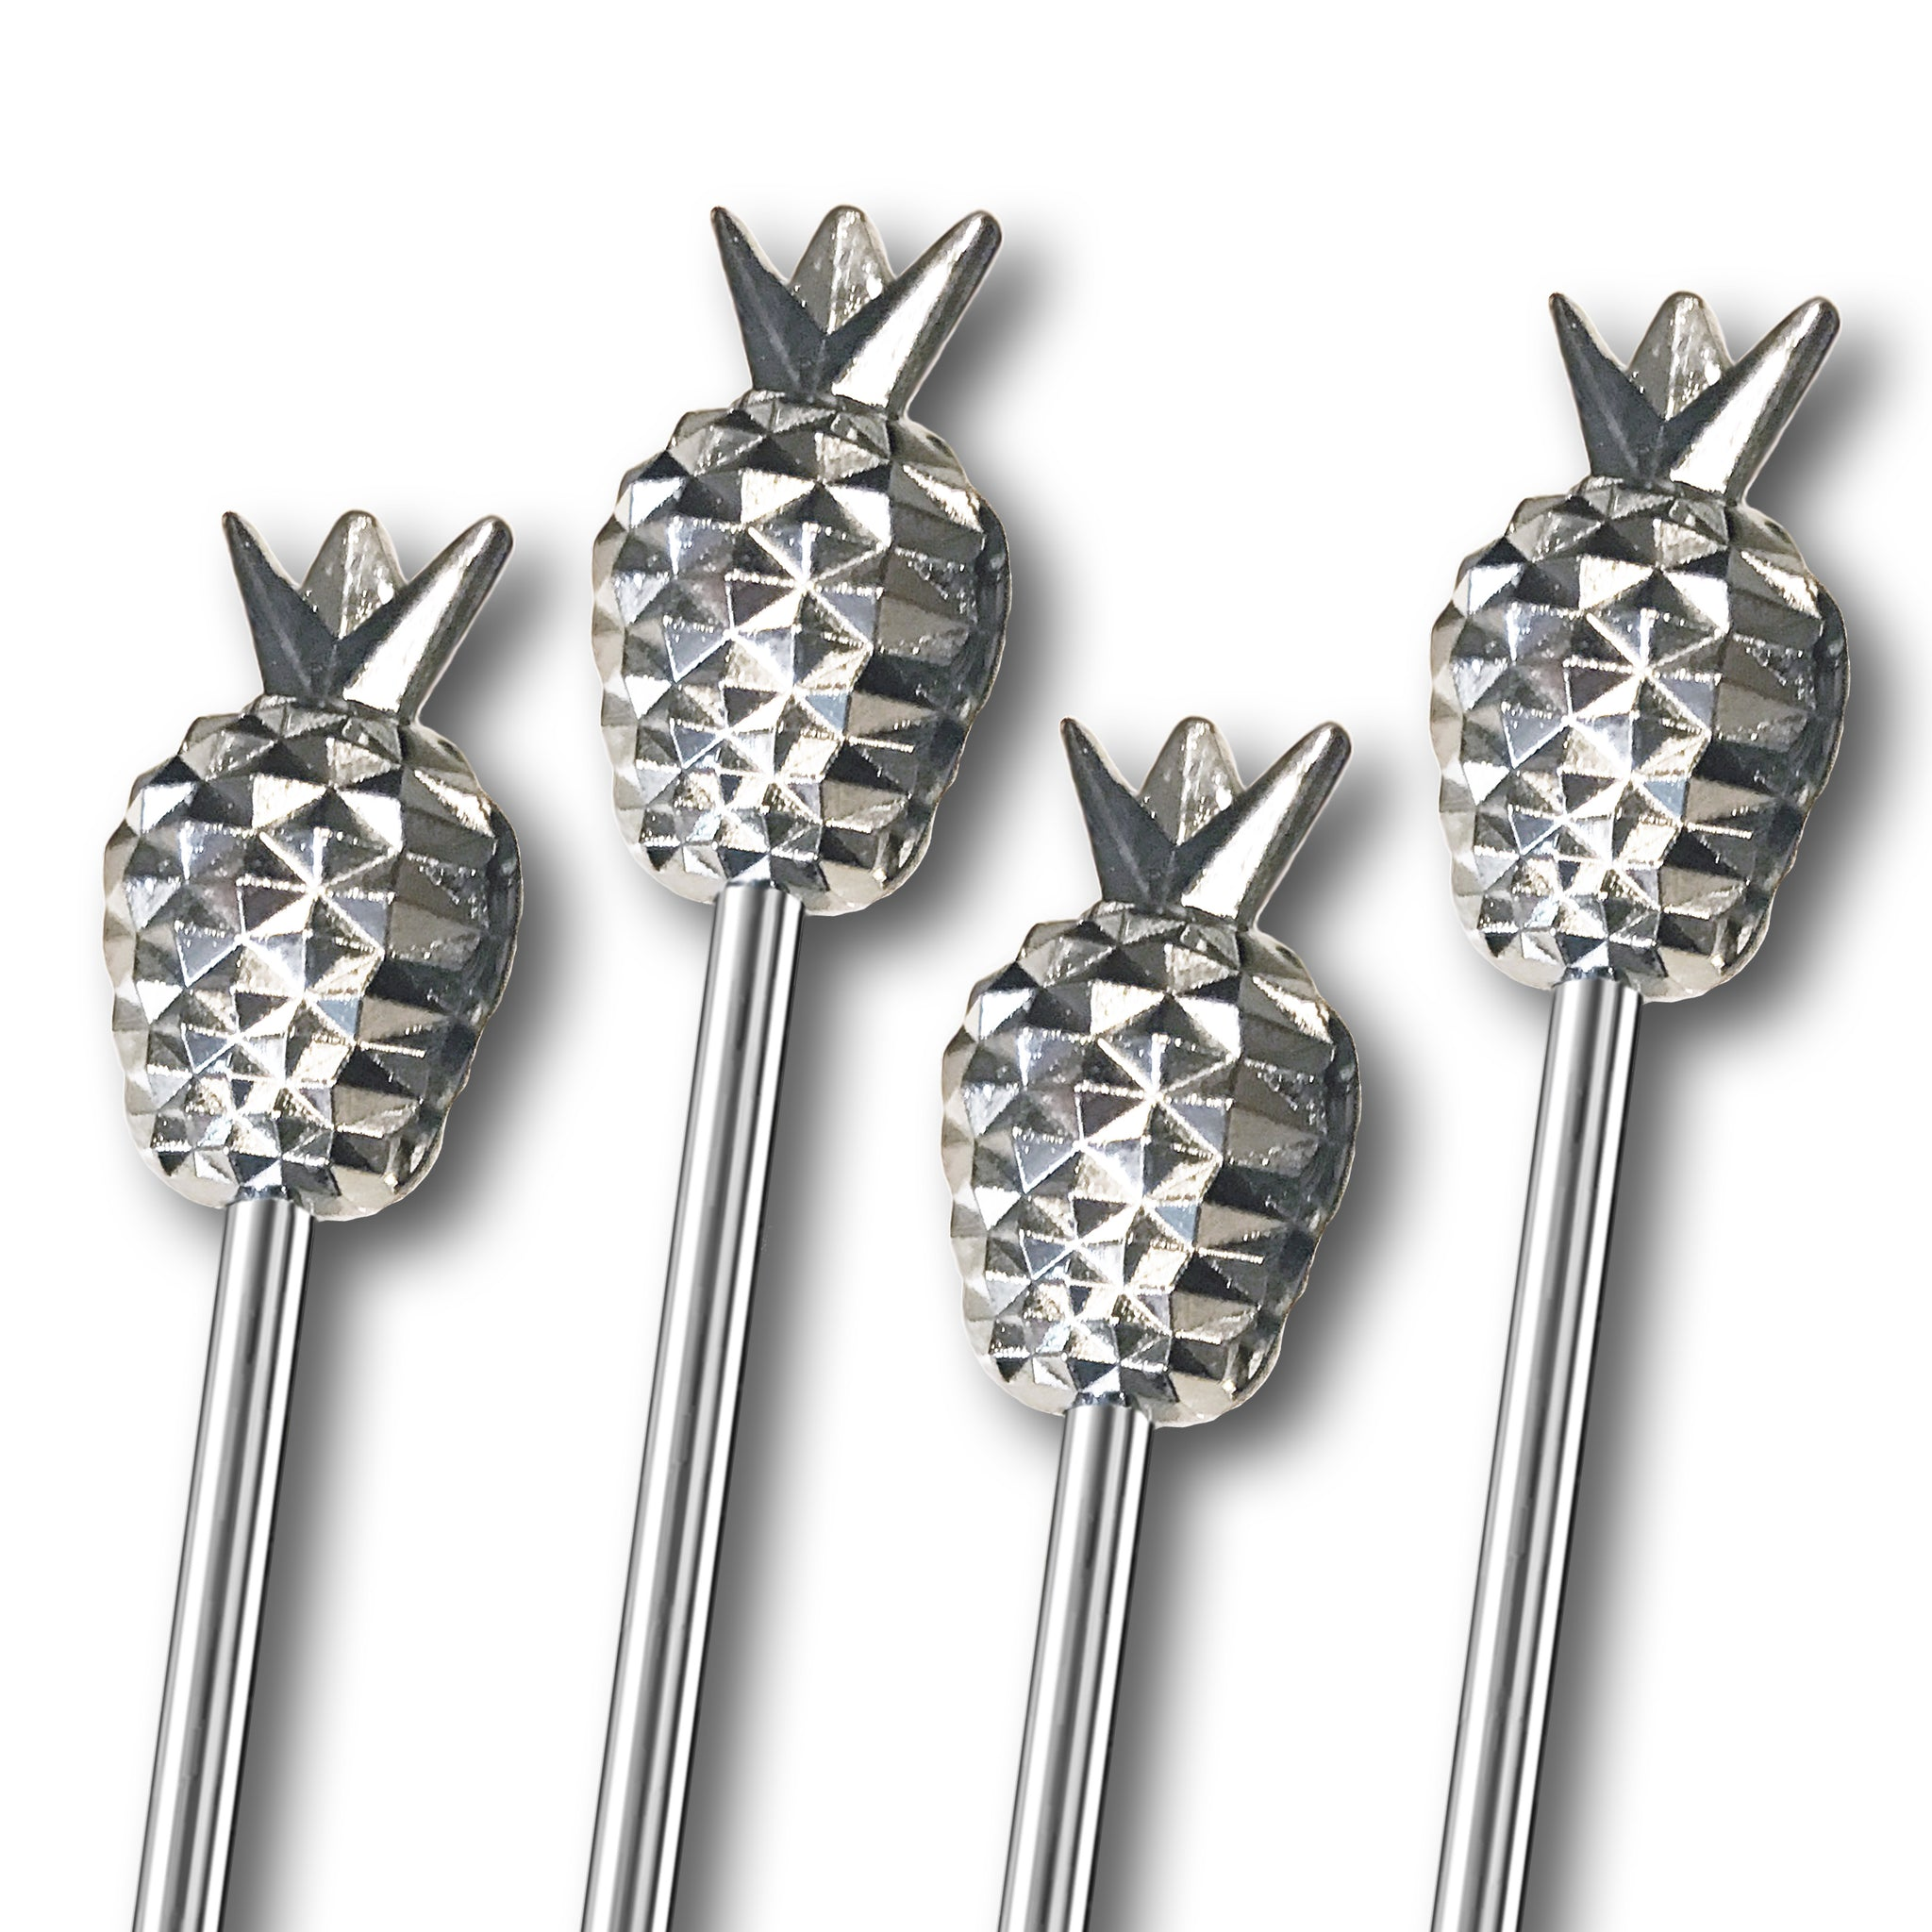 Tall Metal Pineapple Stirrers - 4 Pc Set